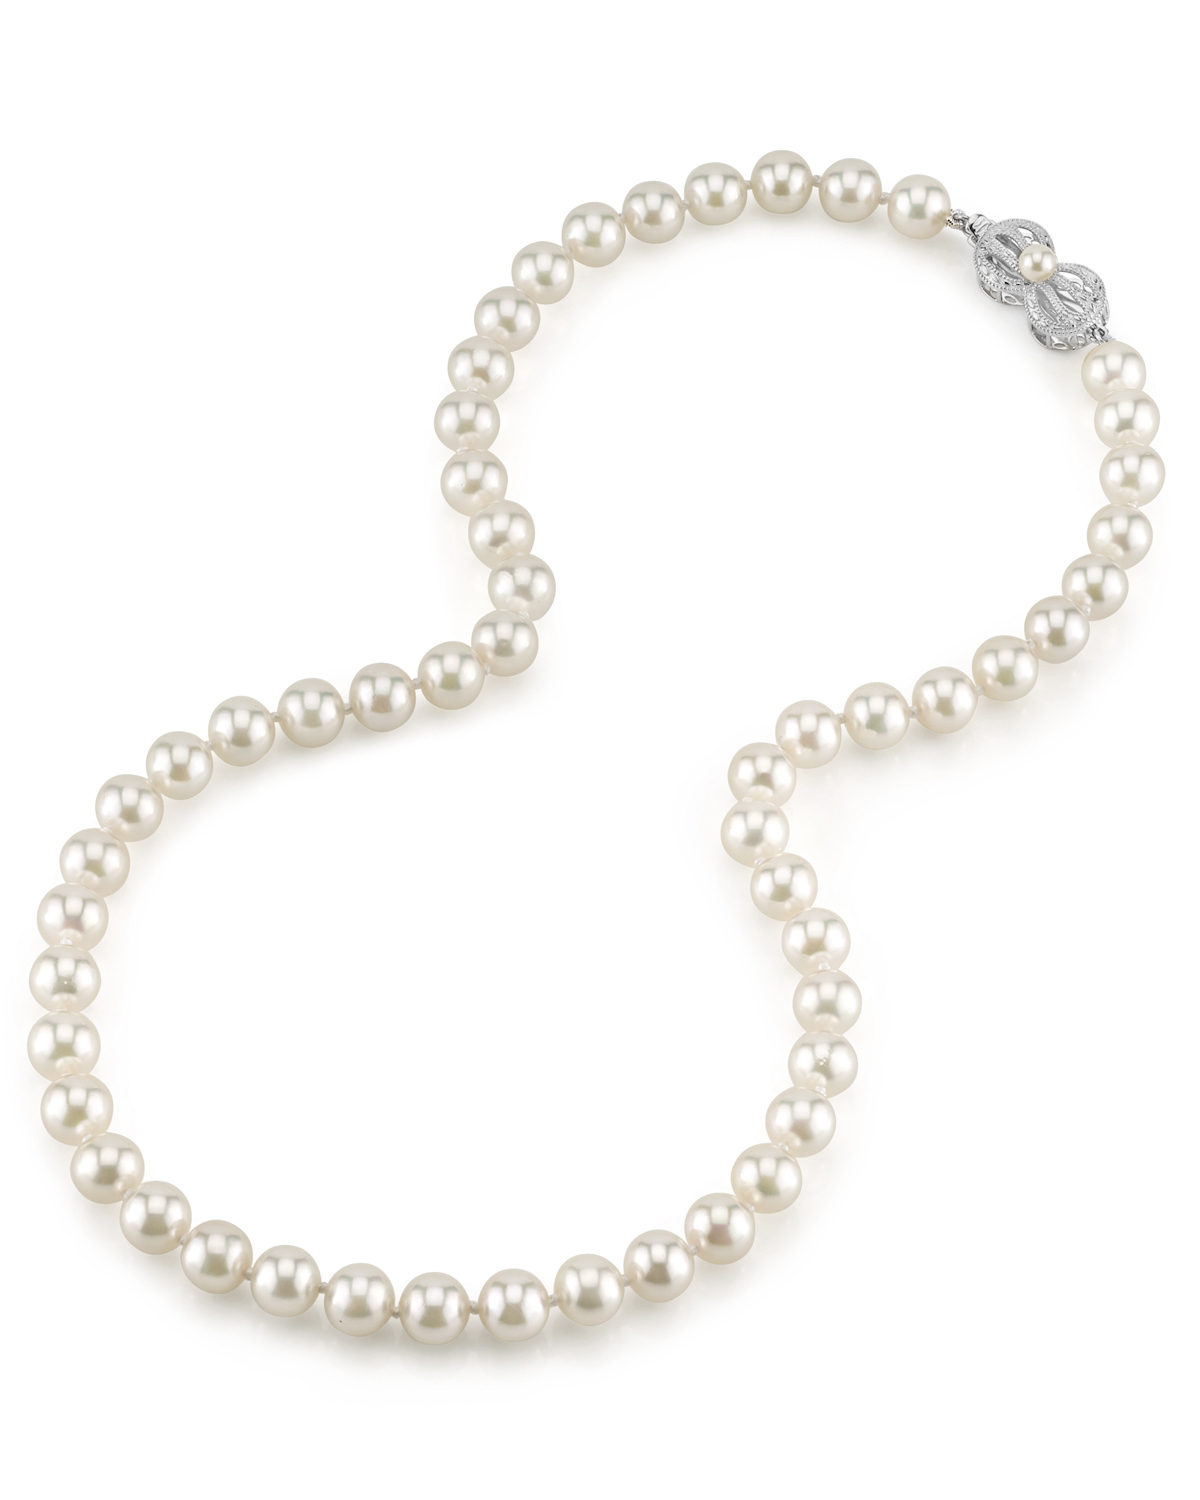 7.5-8.0mm Japanese Akoya White Pearl Necklace- AA+ Quality